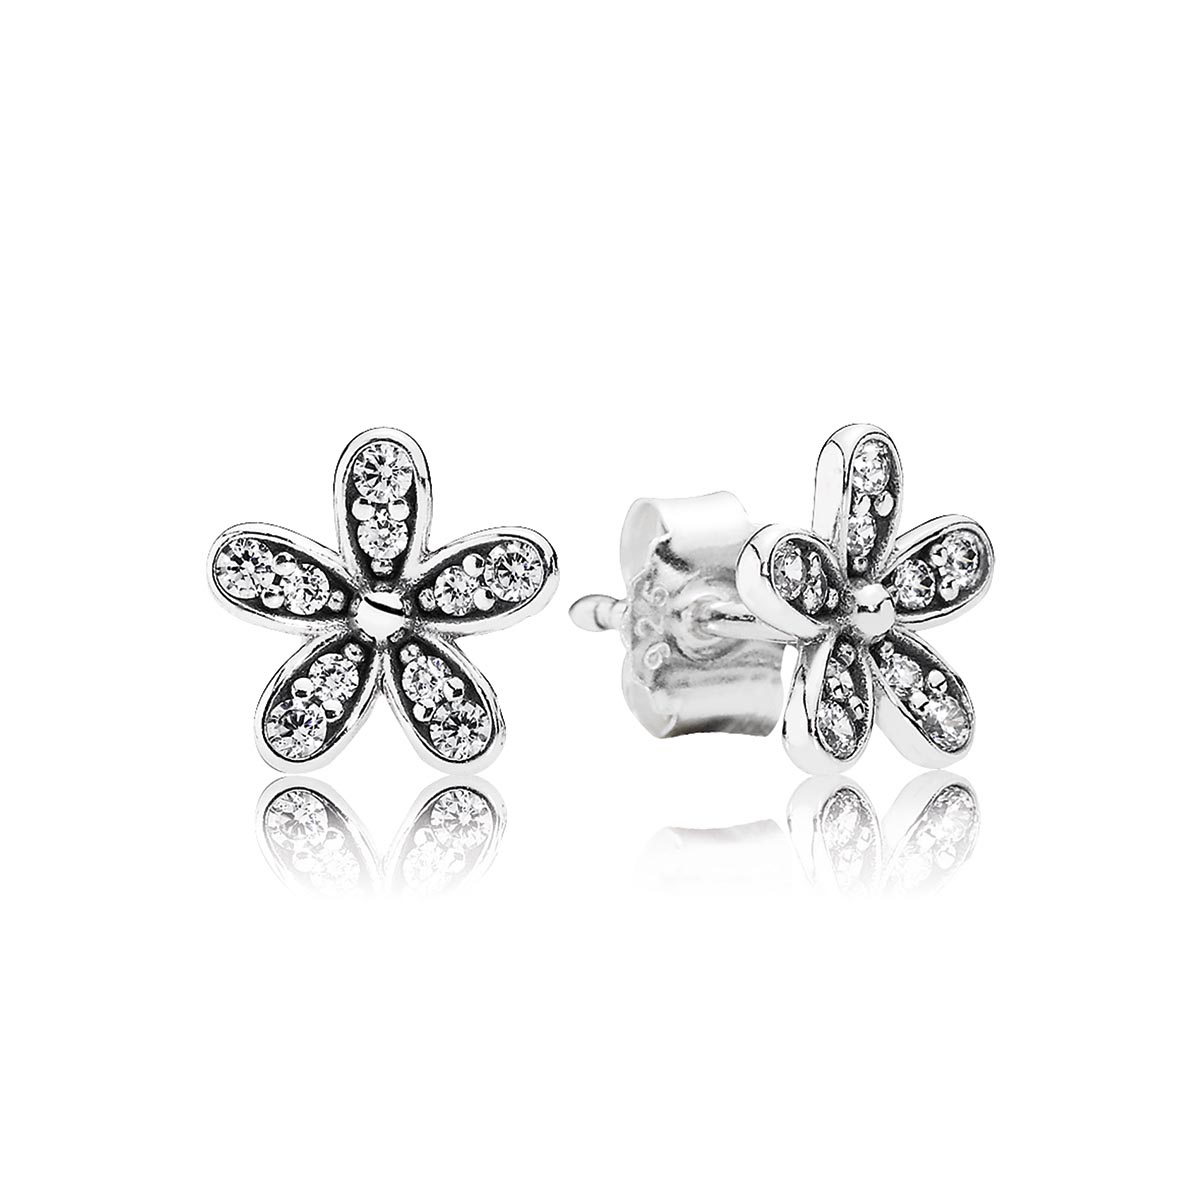 804-382-PANDORA Dazzling Daisy with Clear CZ Stud Earrings